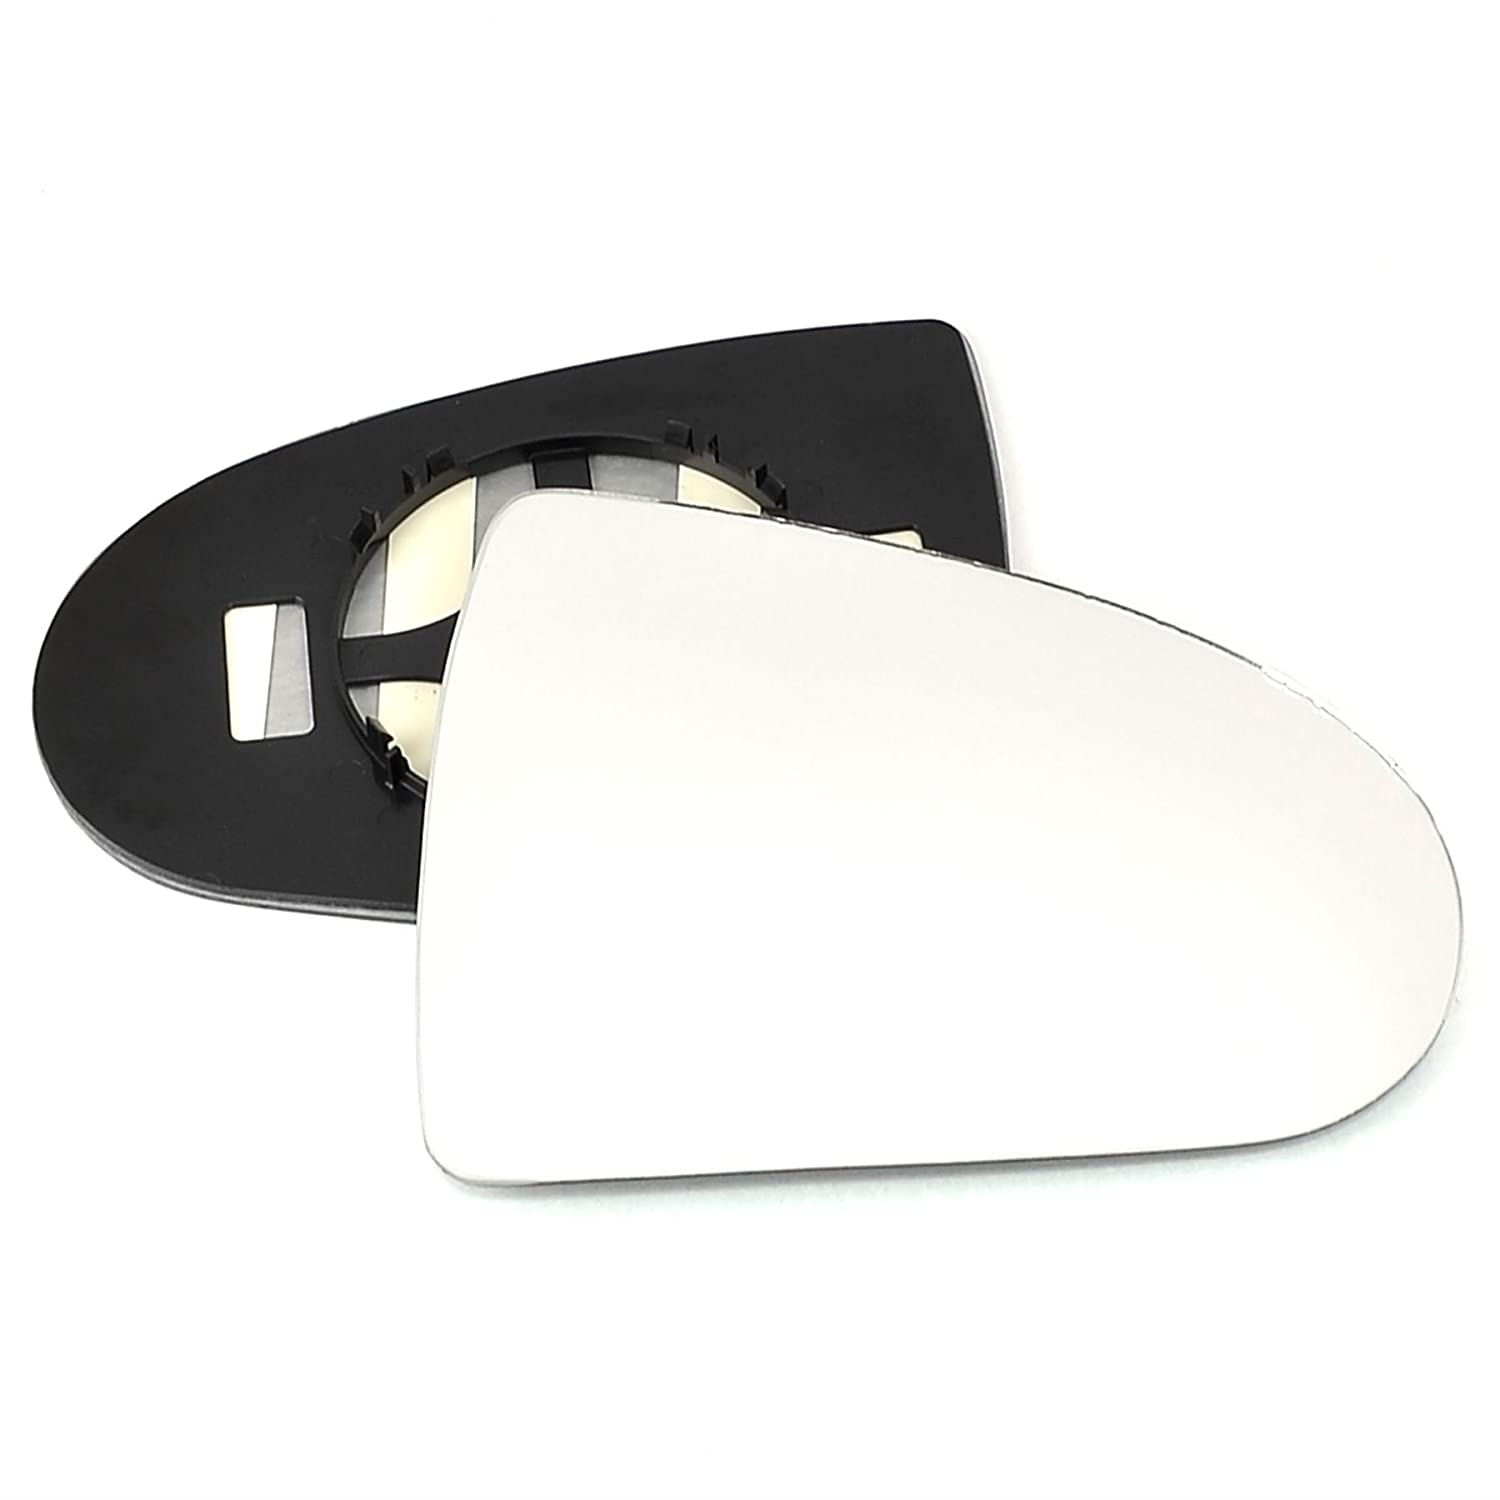 Clip On Driver right hand side wing door Silver mirror glass with backing plate #C-SN//R-MICT02